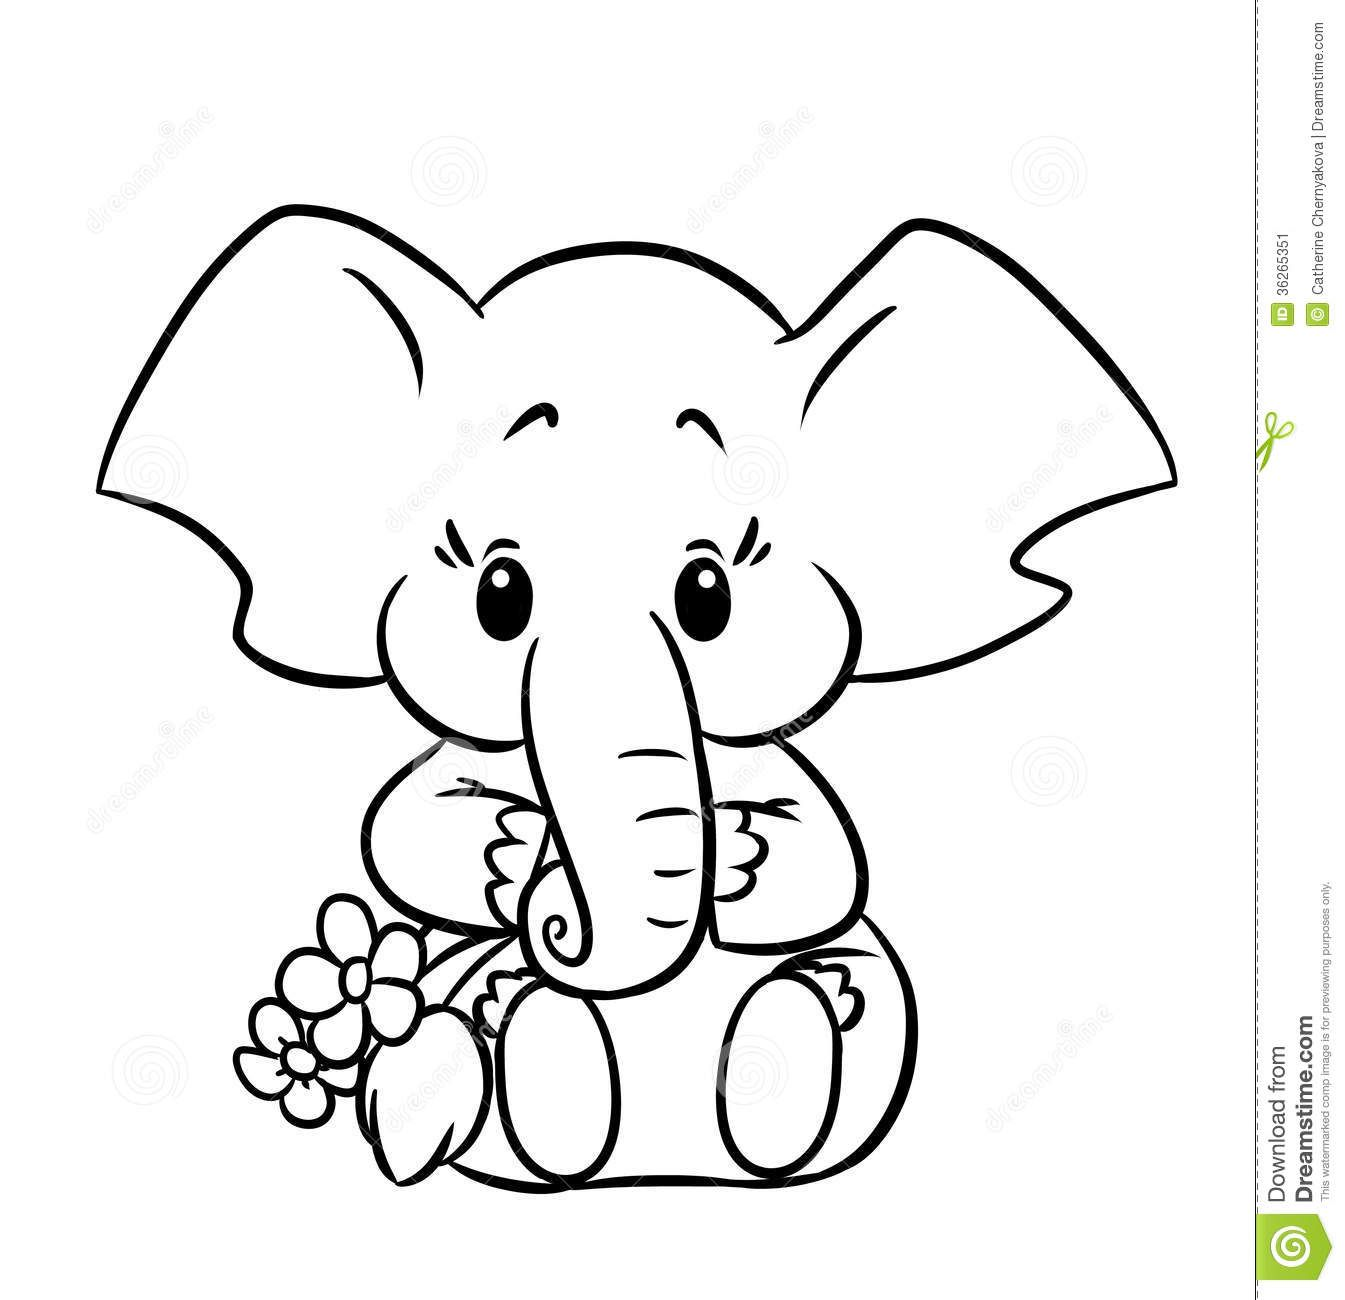 Http Colorings Co Elefants Coloring Pages For Girls Pages Coloring Girls Dibujos De Animales Munequitos Para Colorear Moldes De Dibujos